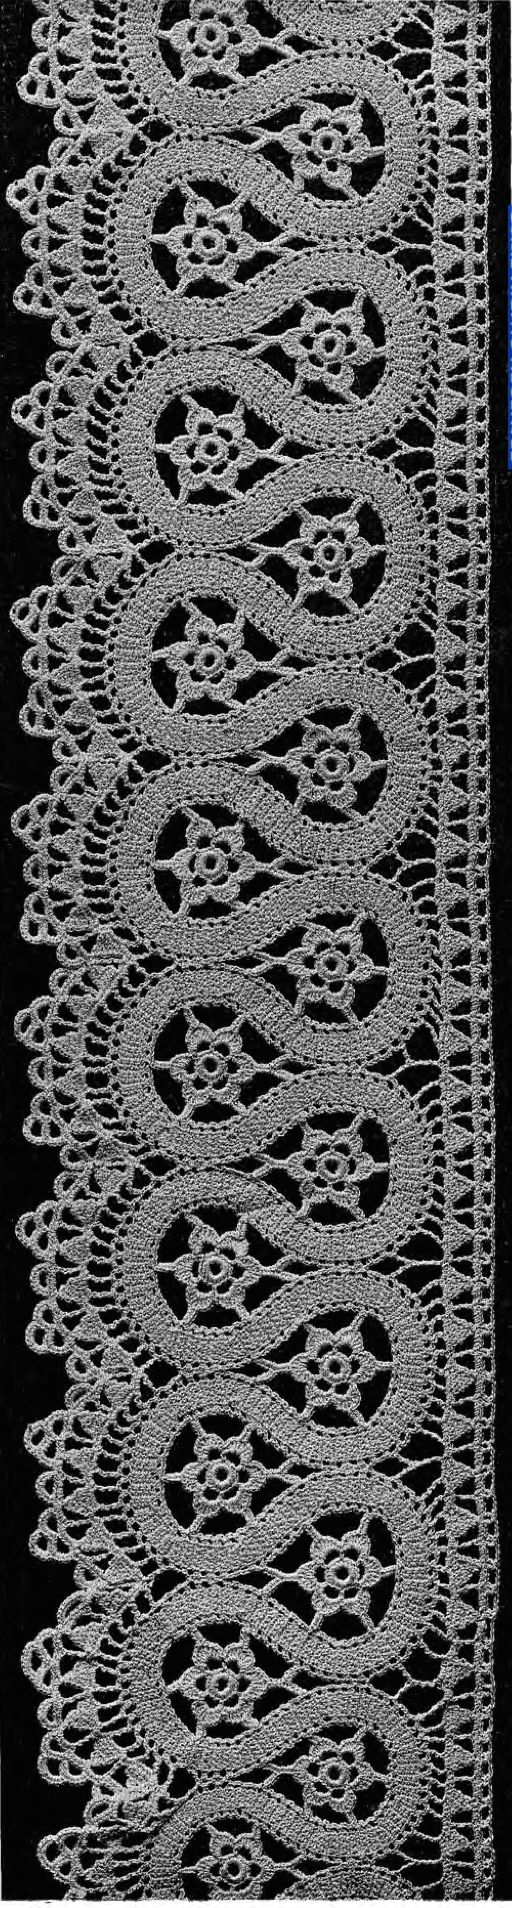 Crochet Lace - booklet in the public domain from Madame Hardouin from the Antique Pattern Library